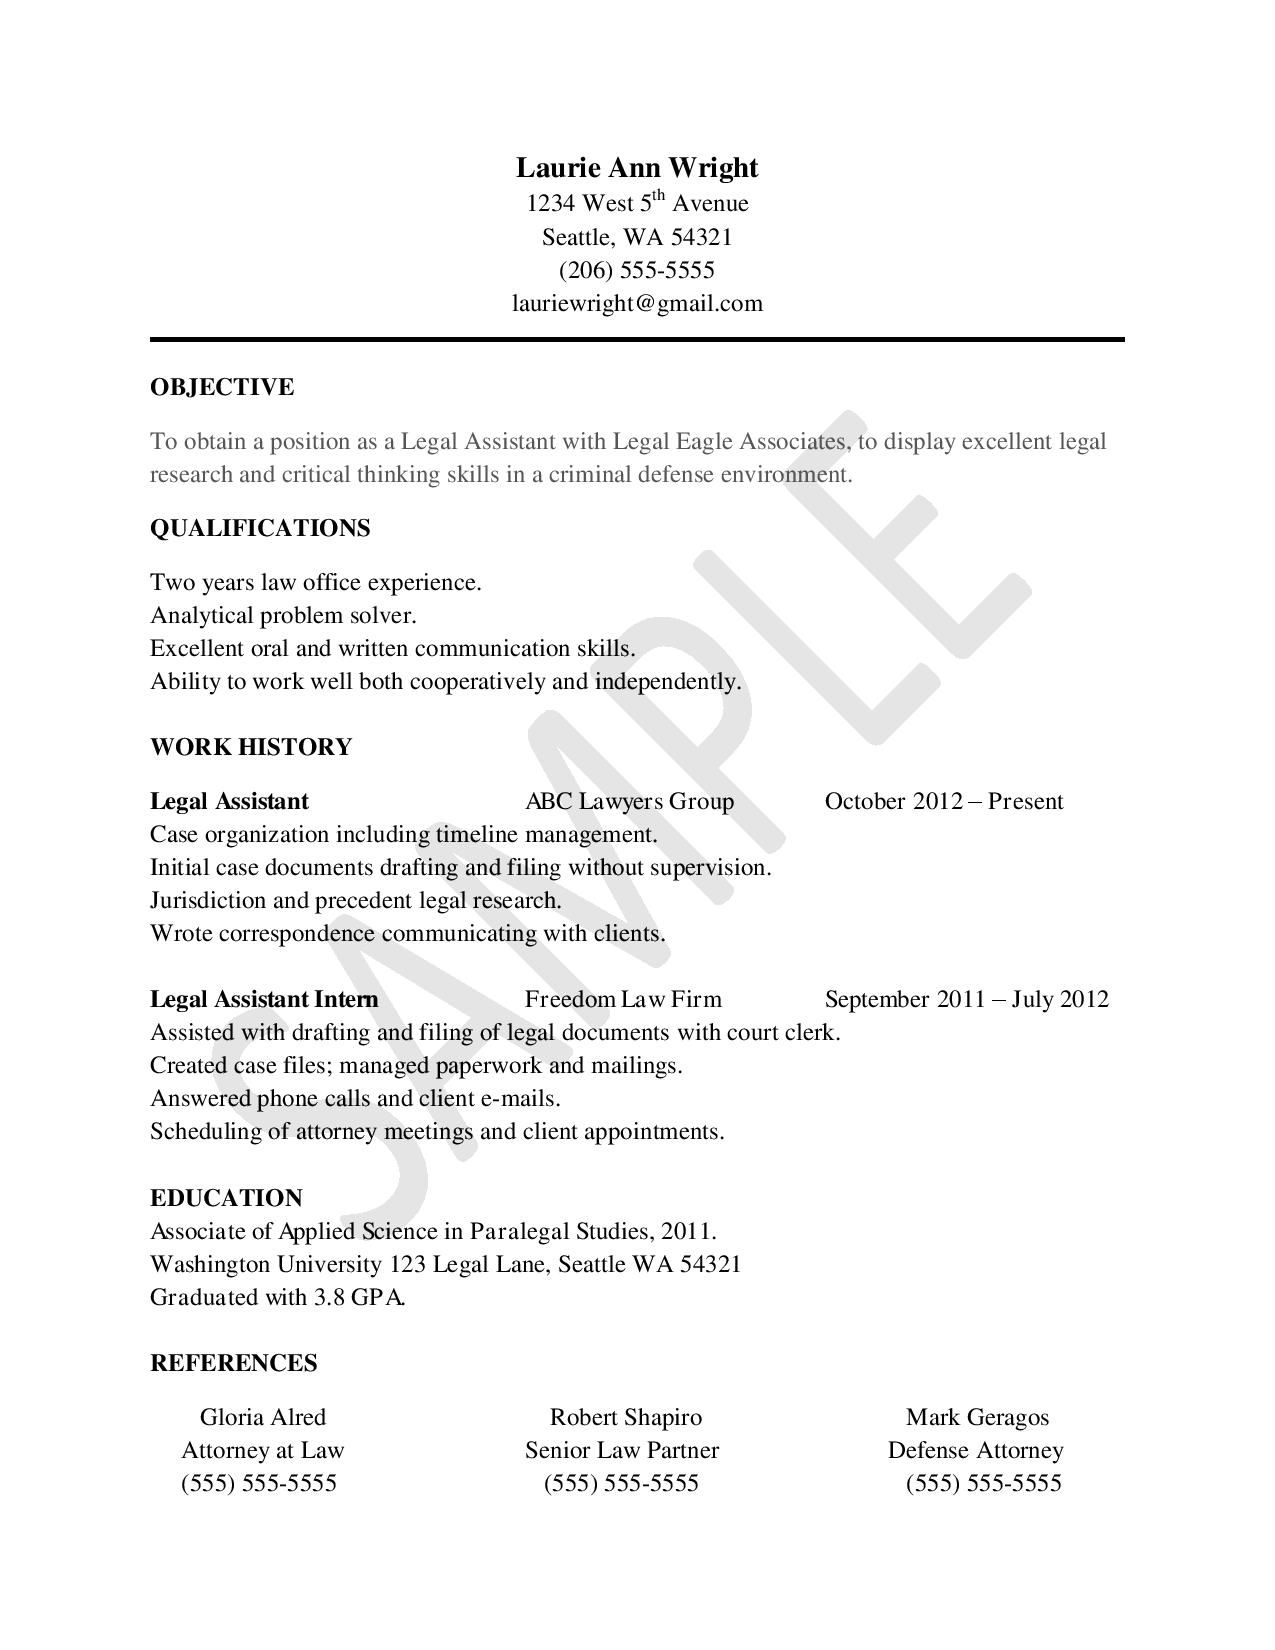 paralegal resume example job resume paralegal cover letter sample paralegal resume example job resume paralegal cover letter sample - Cover Letter For Job Example